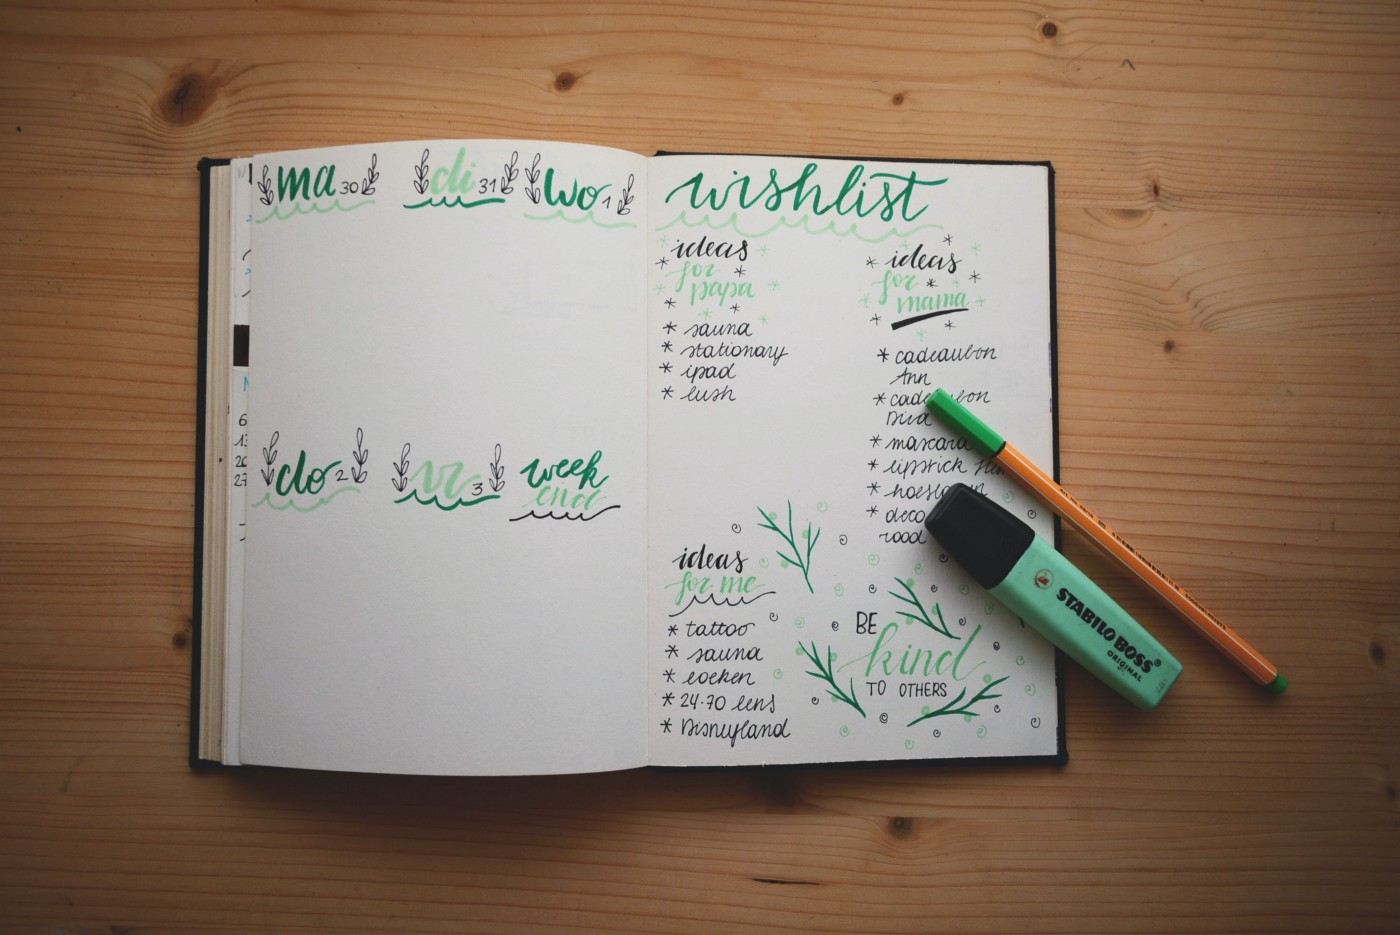 A notebook open that has some handwriting in it, the pages having green colored text on it, there is a pencil and highlighter sitting on the viewer's right of the page